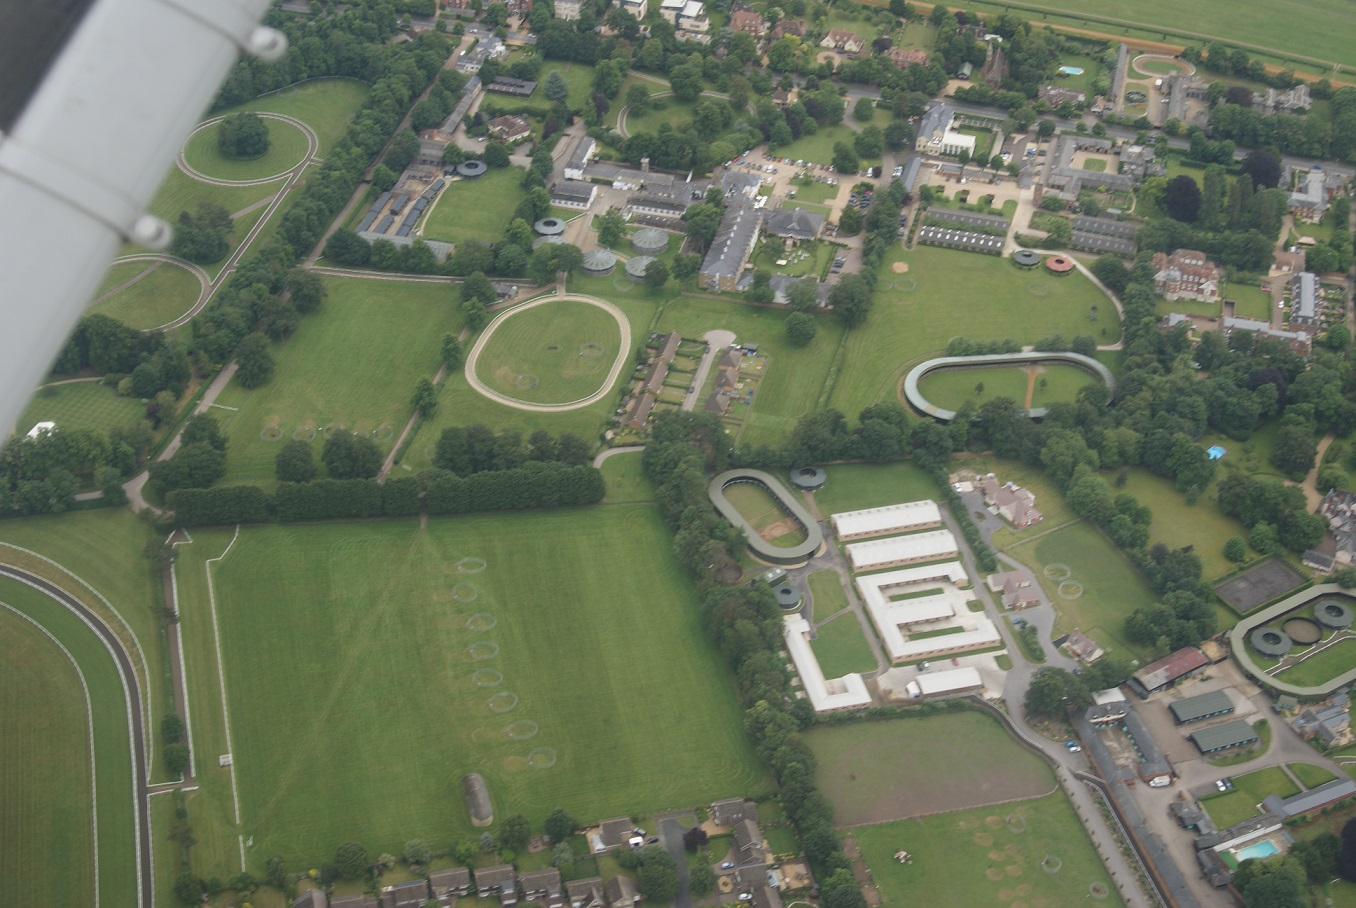 Overhead Newmarket (Famous for Horse Racing)